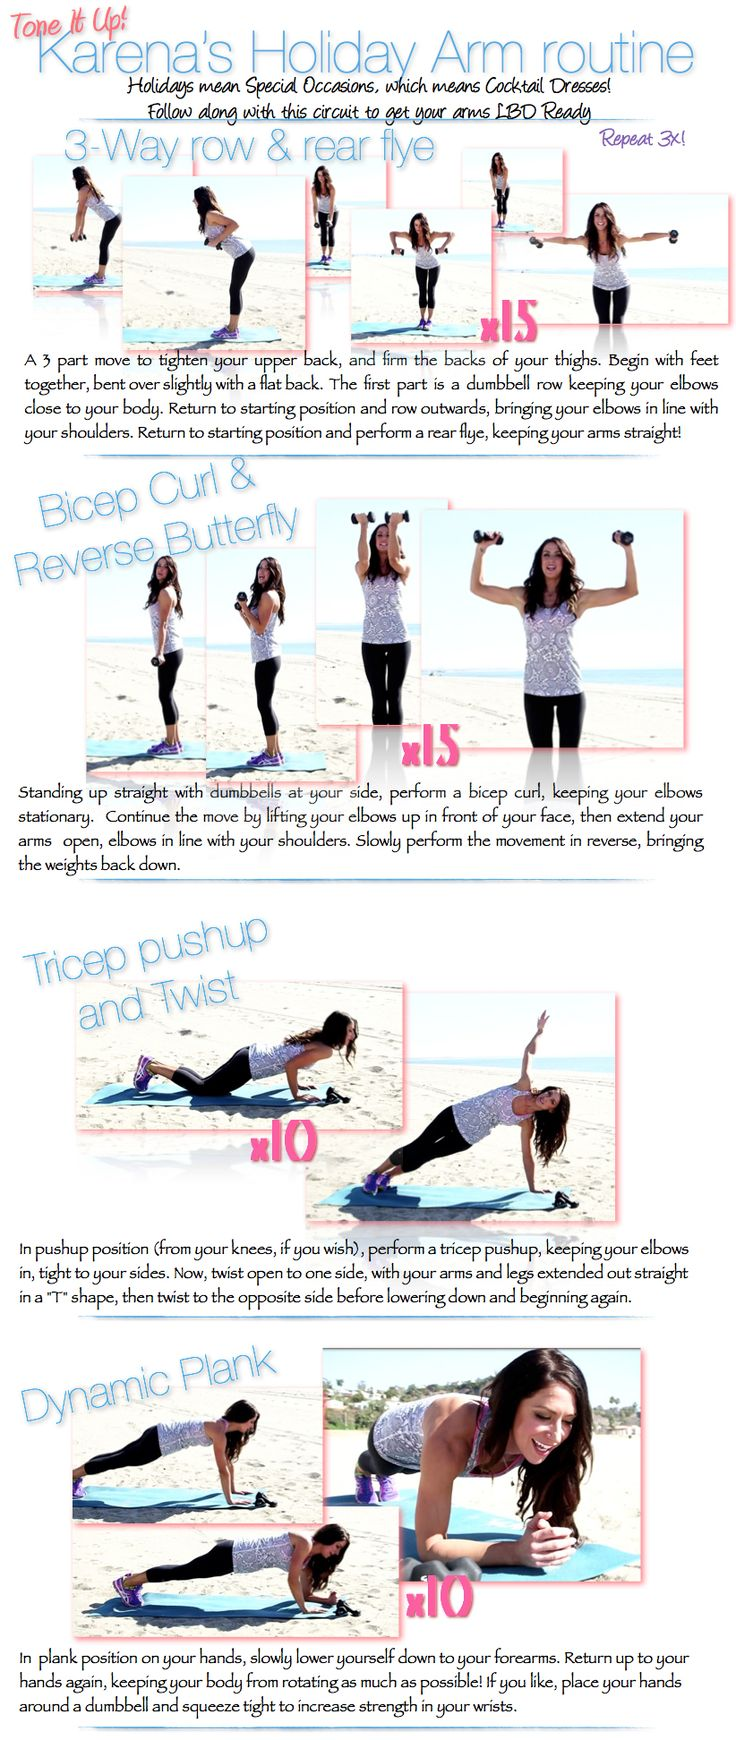 Happy Tone It Up Tuesday ladies! Here is your Holiday Arm routine, to get LBD ready for all those fun cocktail parties :) check out more at ToneItUp.com <3